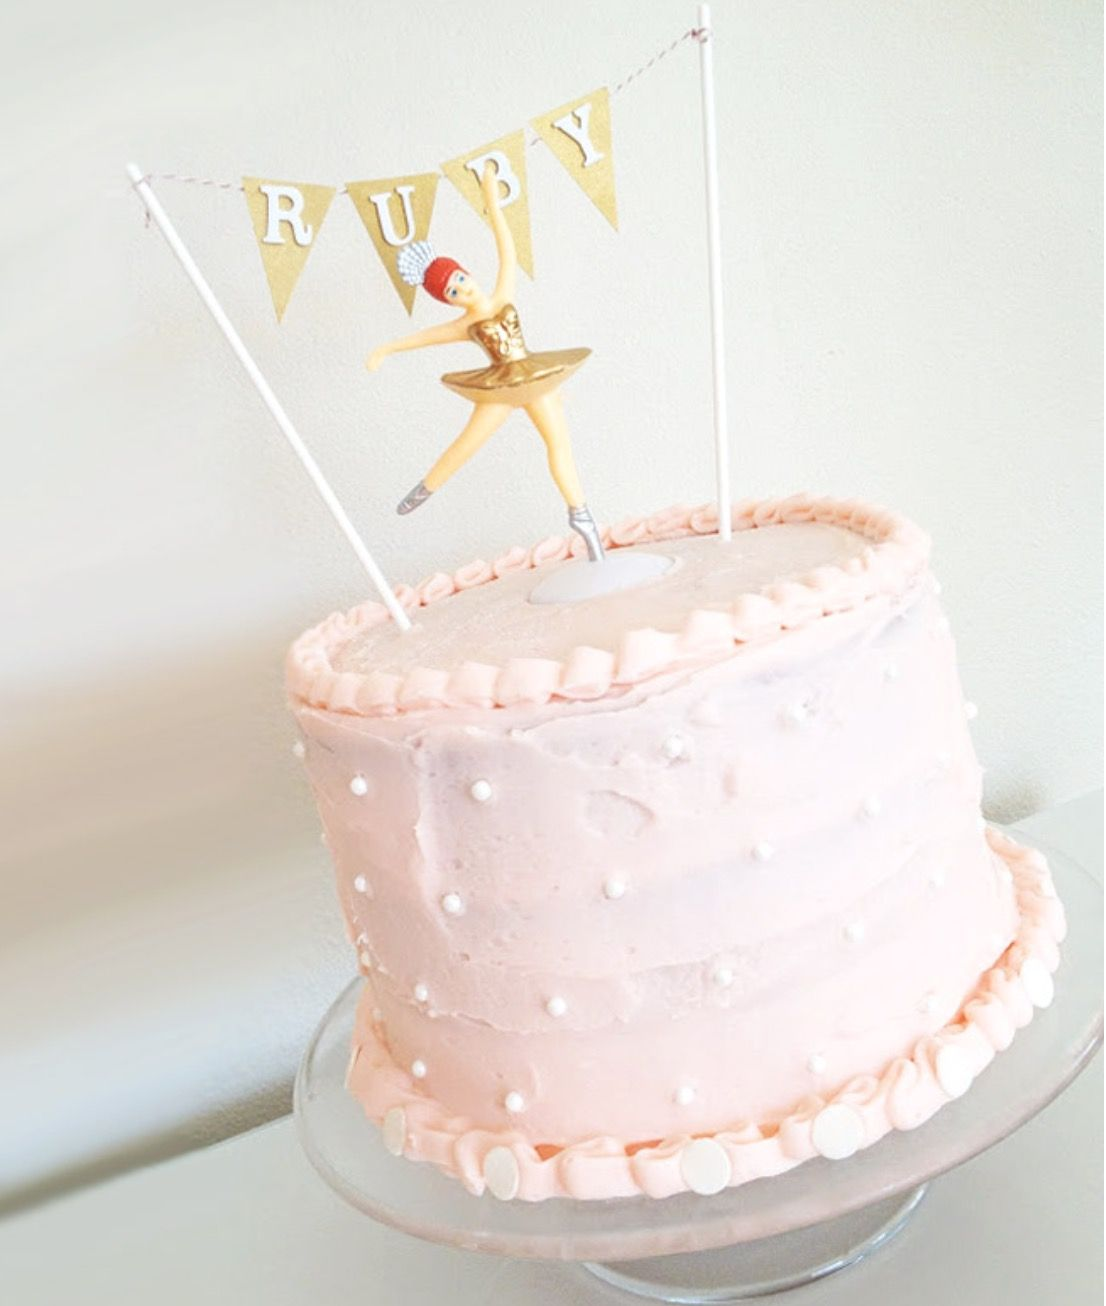 Pin by Mandy Kowarski on Bday ideas Pinterest Ballerina